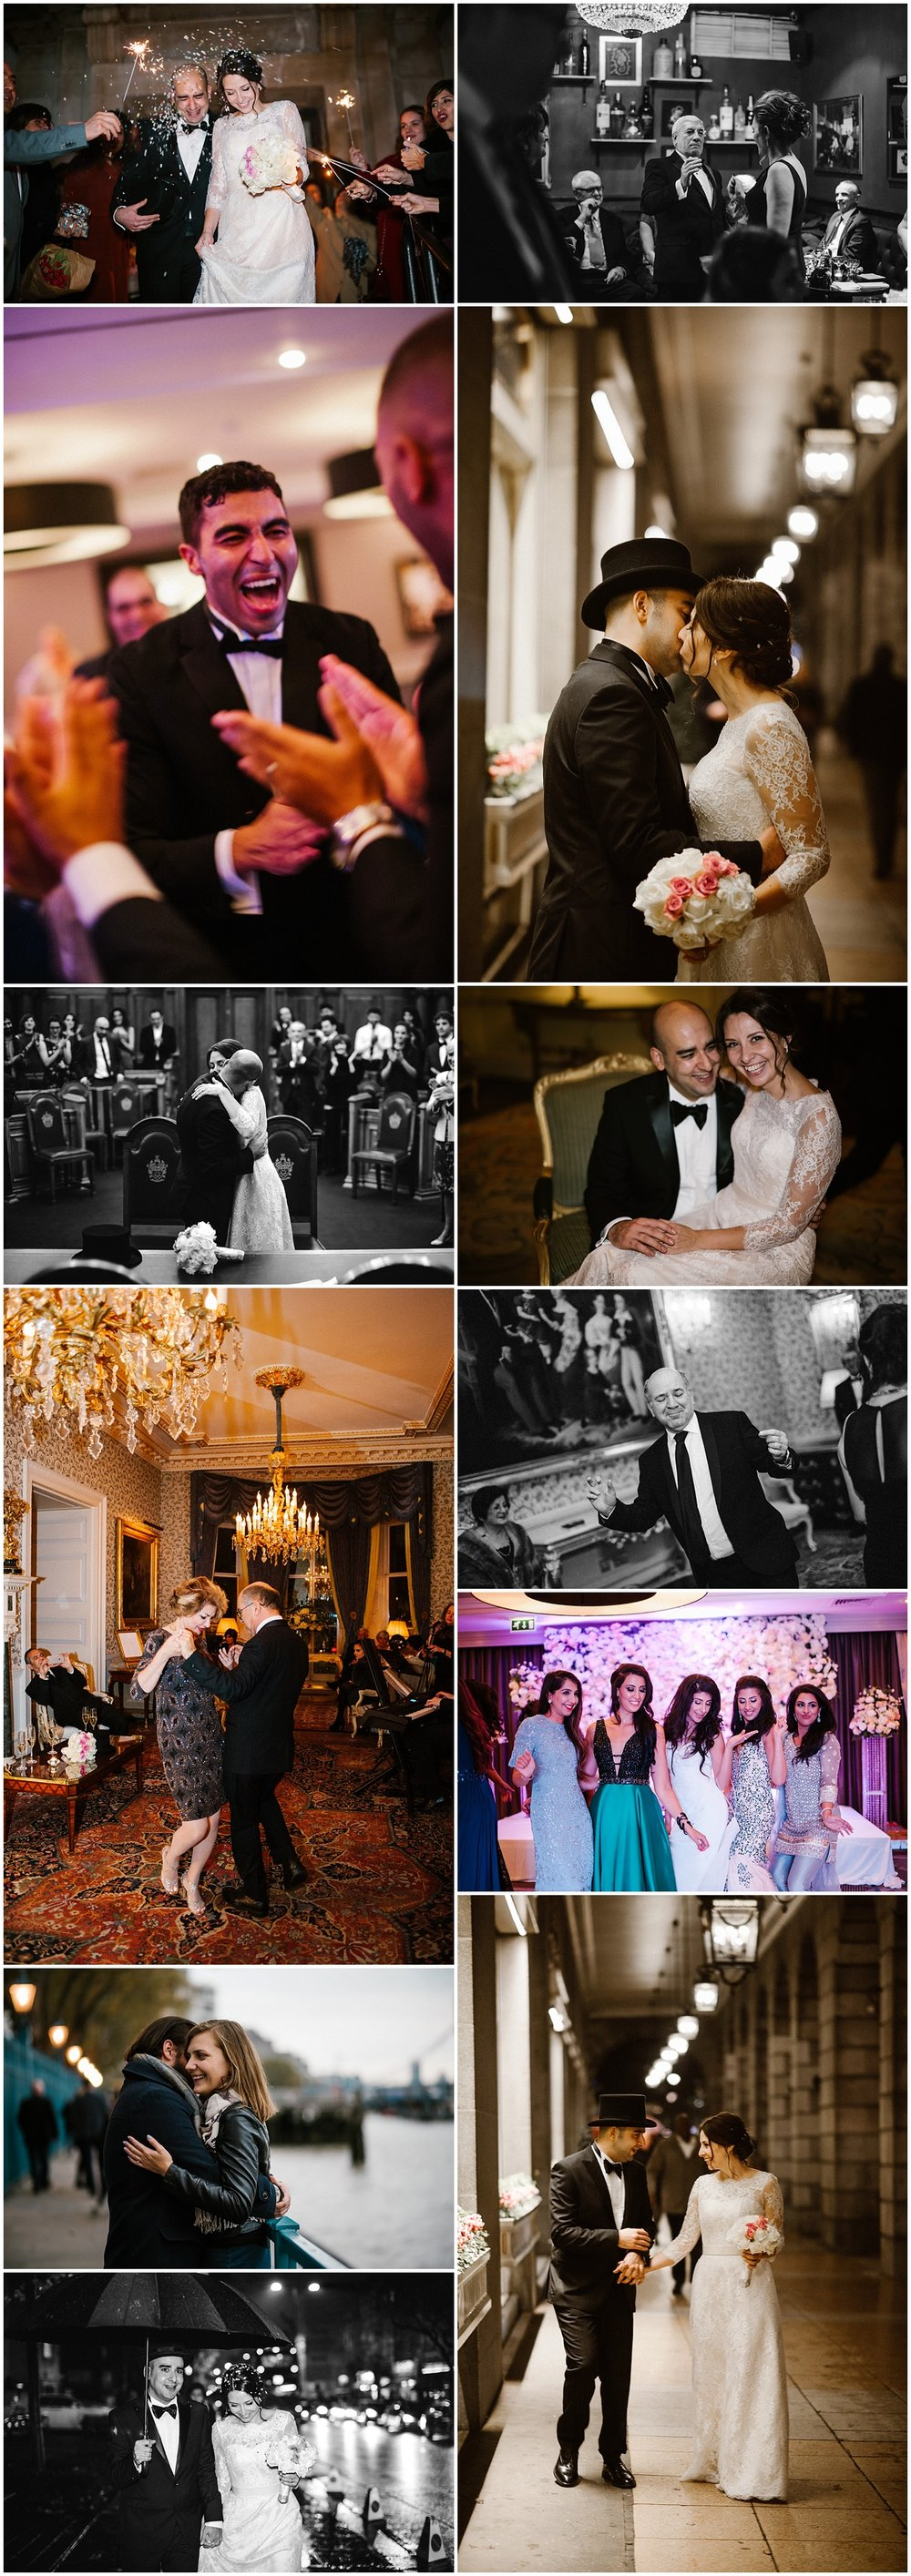 the best national wedding photographer